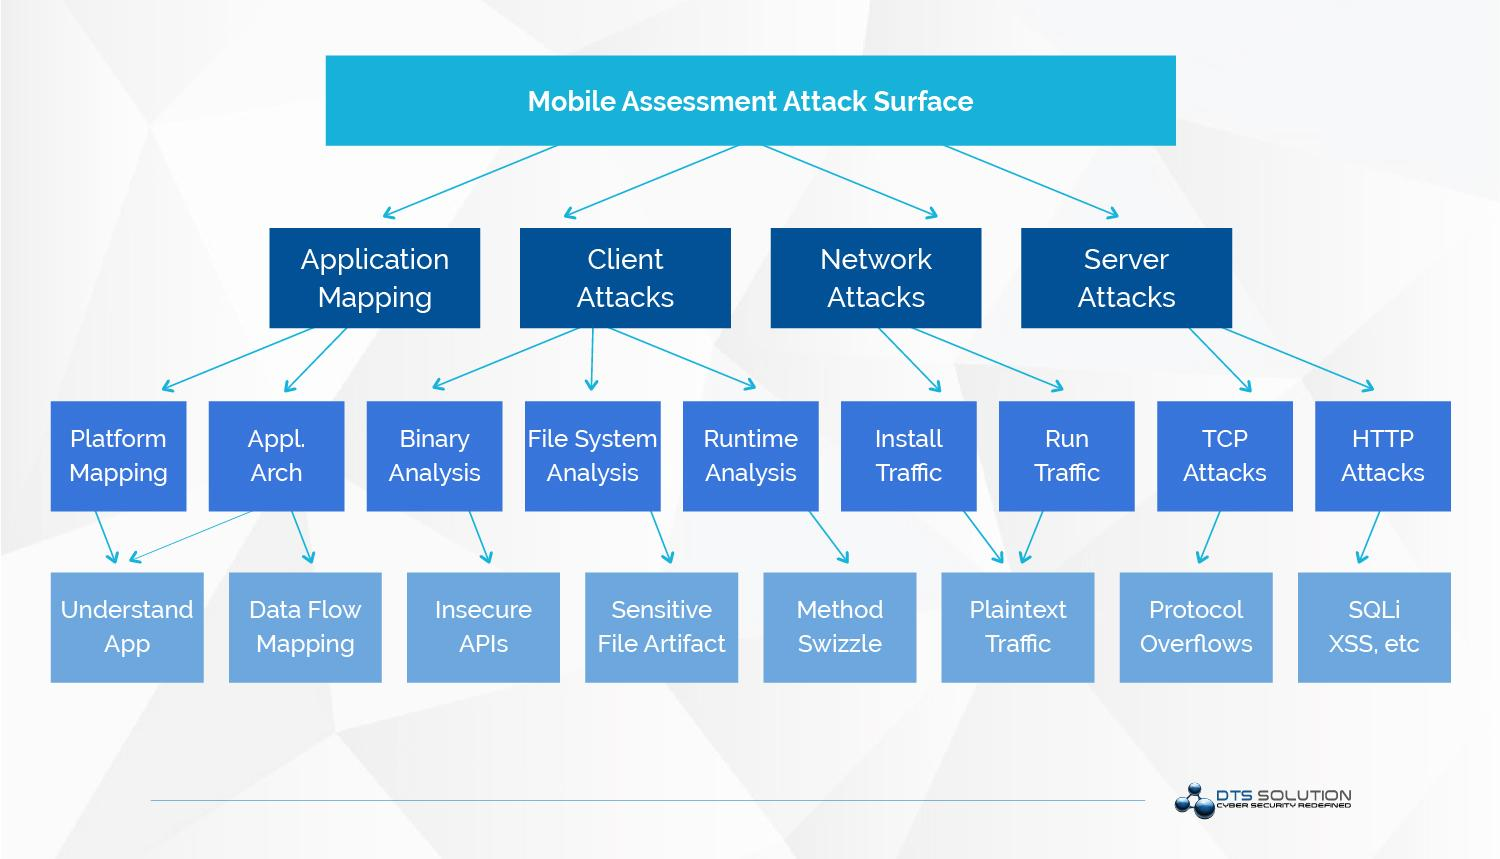 Mobile Assessment Attack Surface